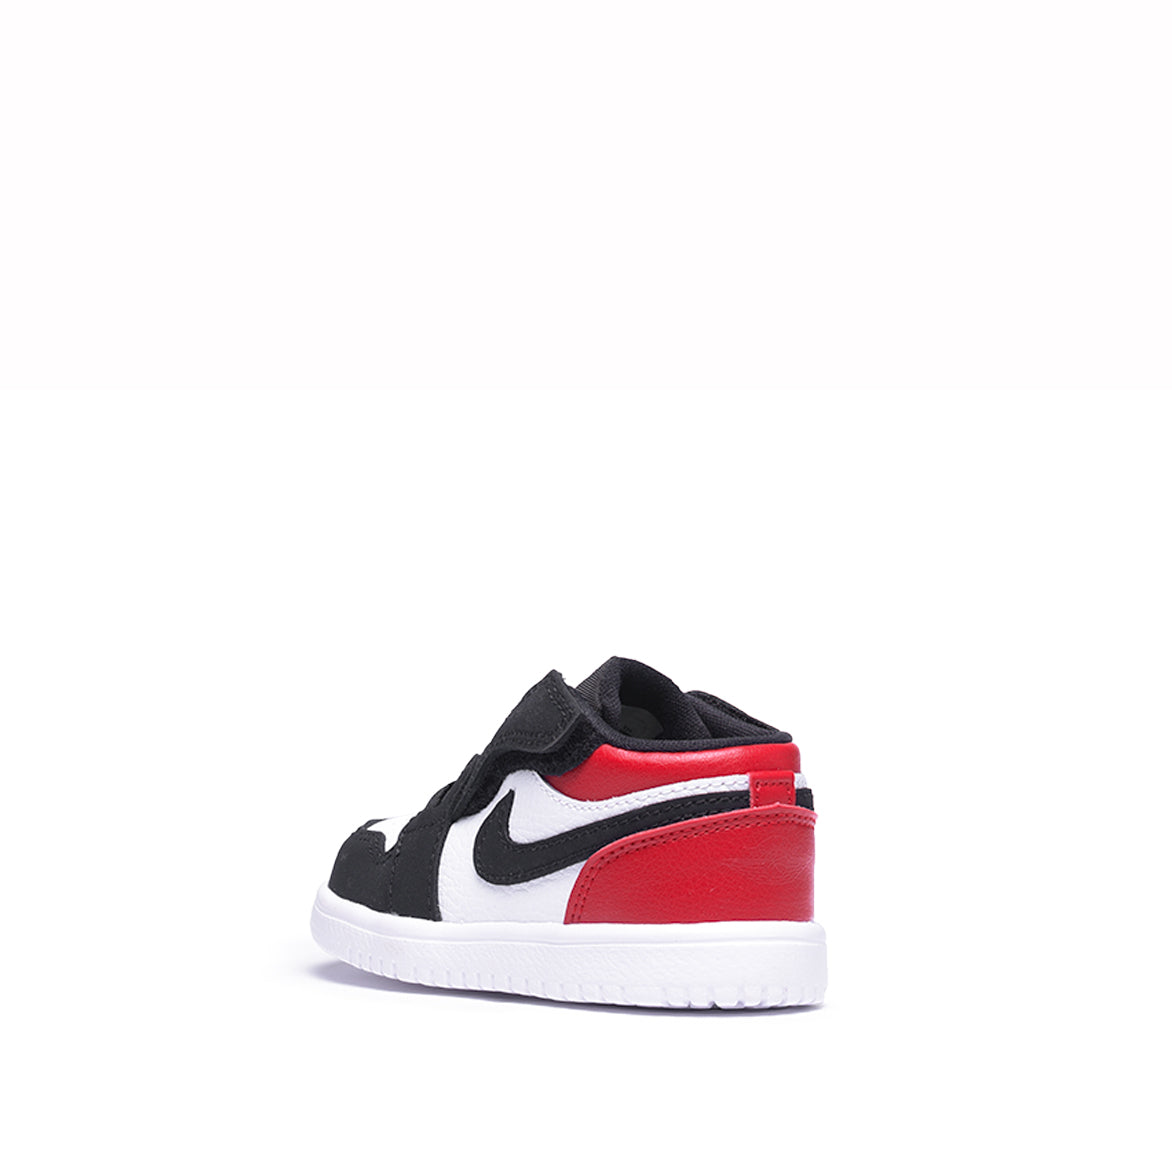 JORDAN 1 LOW ALT (TD) - WHITE / BLACK - GYM RED